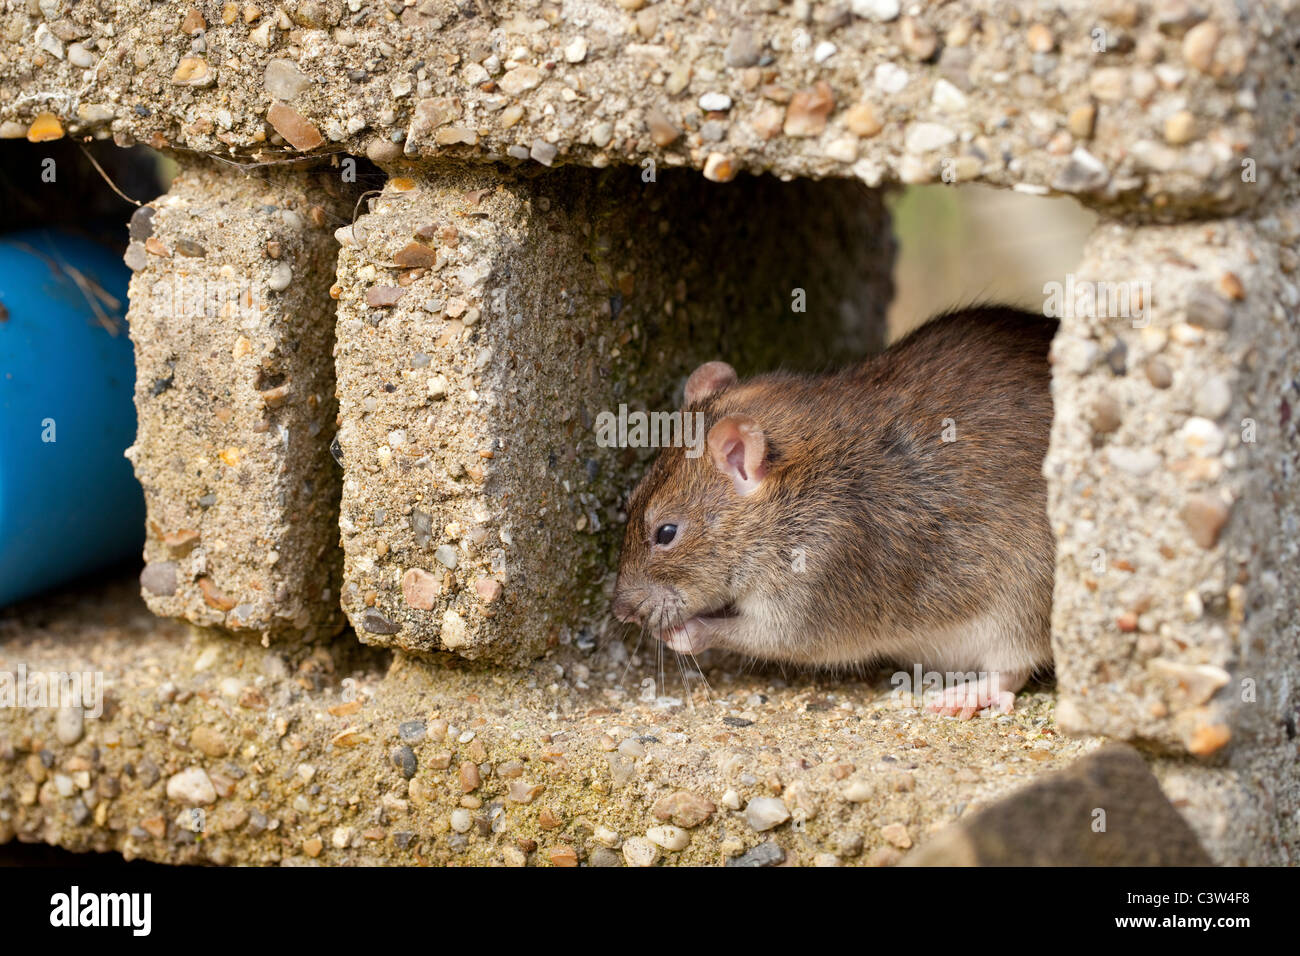 Brown Rat (Rattus norvegicus). Under cover, washing and grooming. - Stock Image